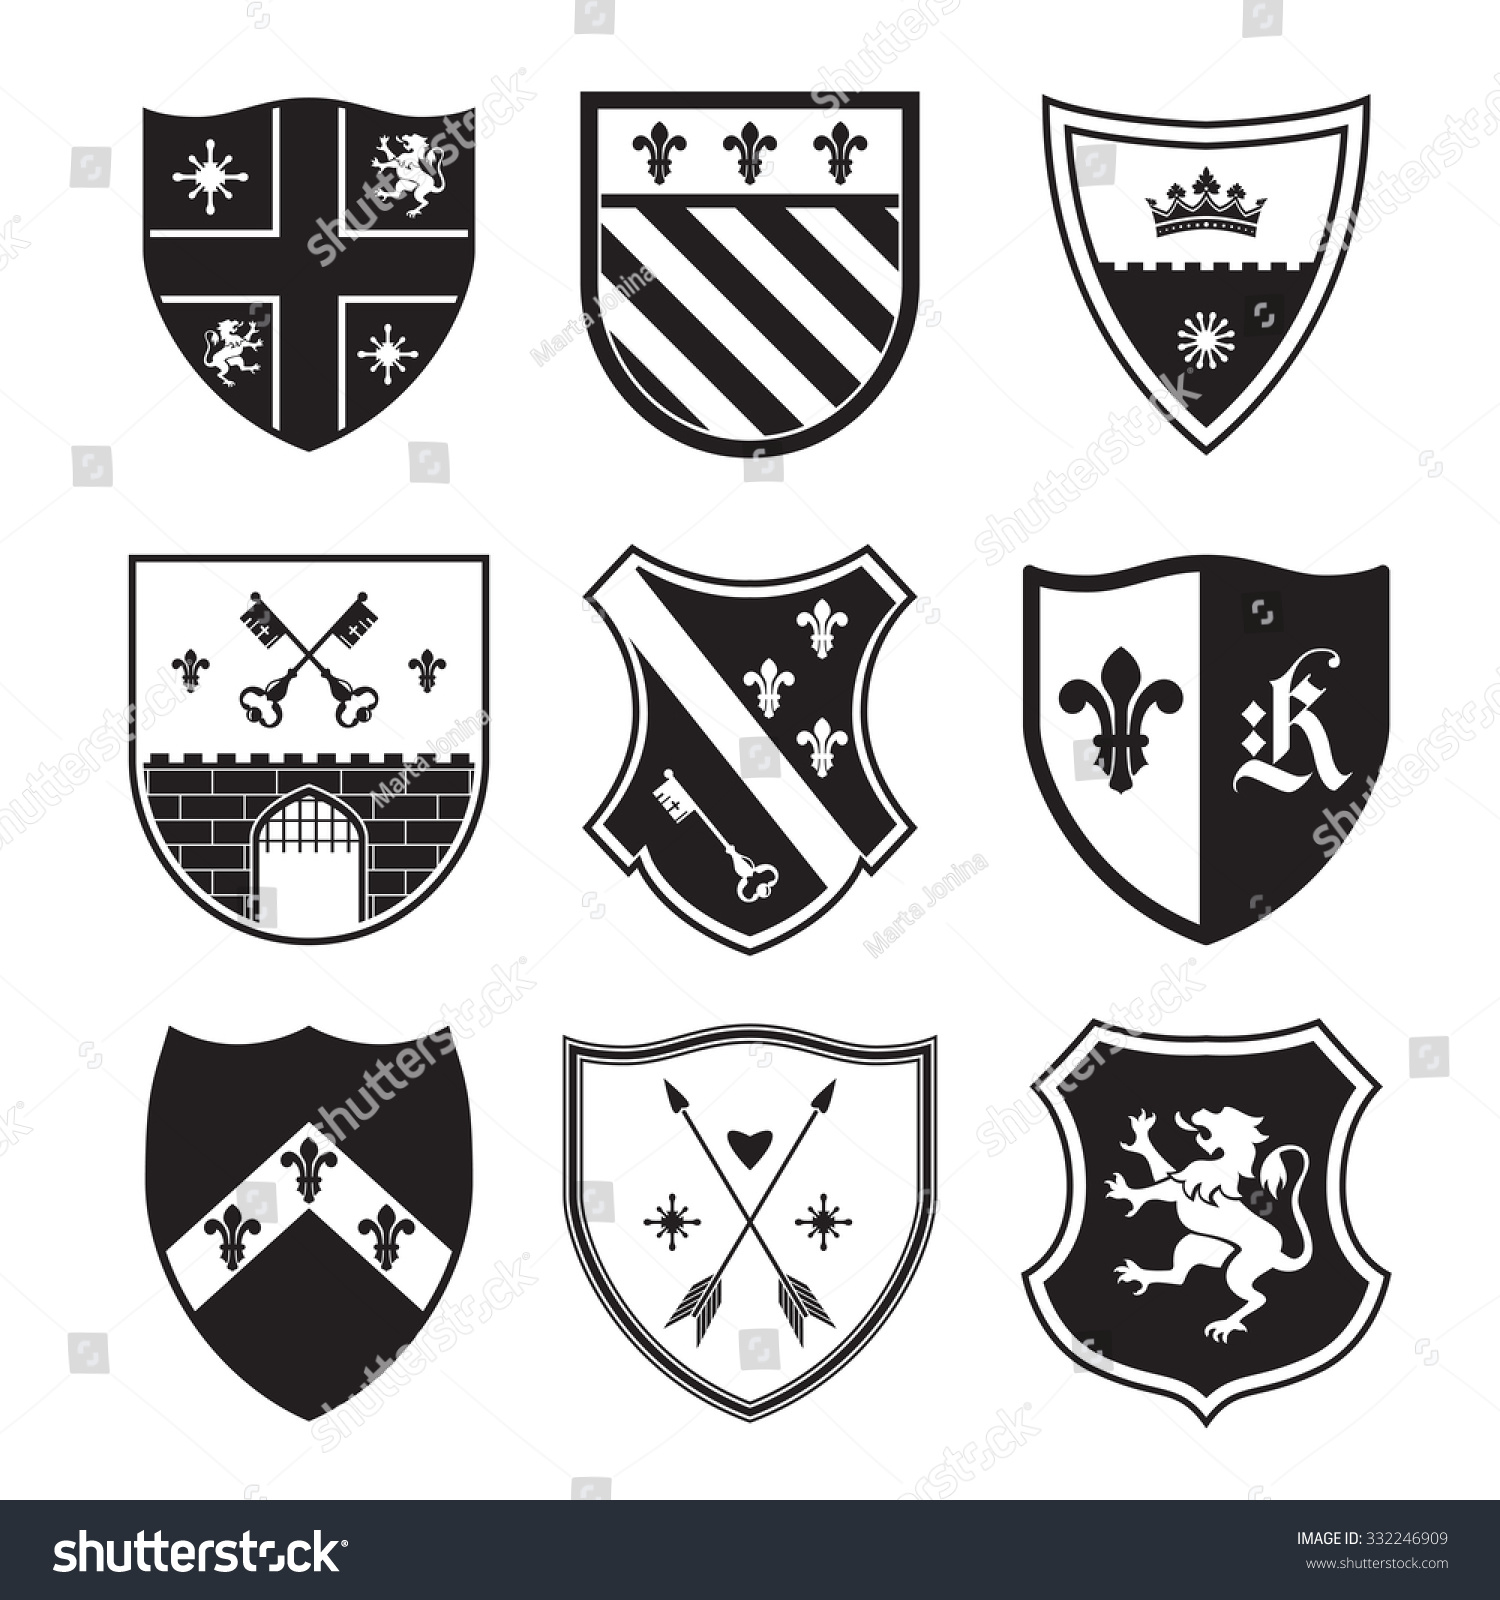 shield silhouettes signs symbols safety security stock